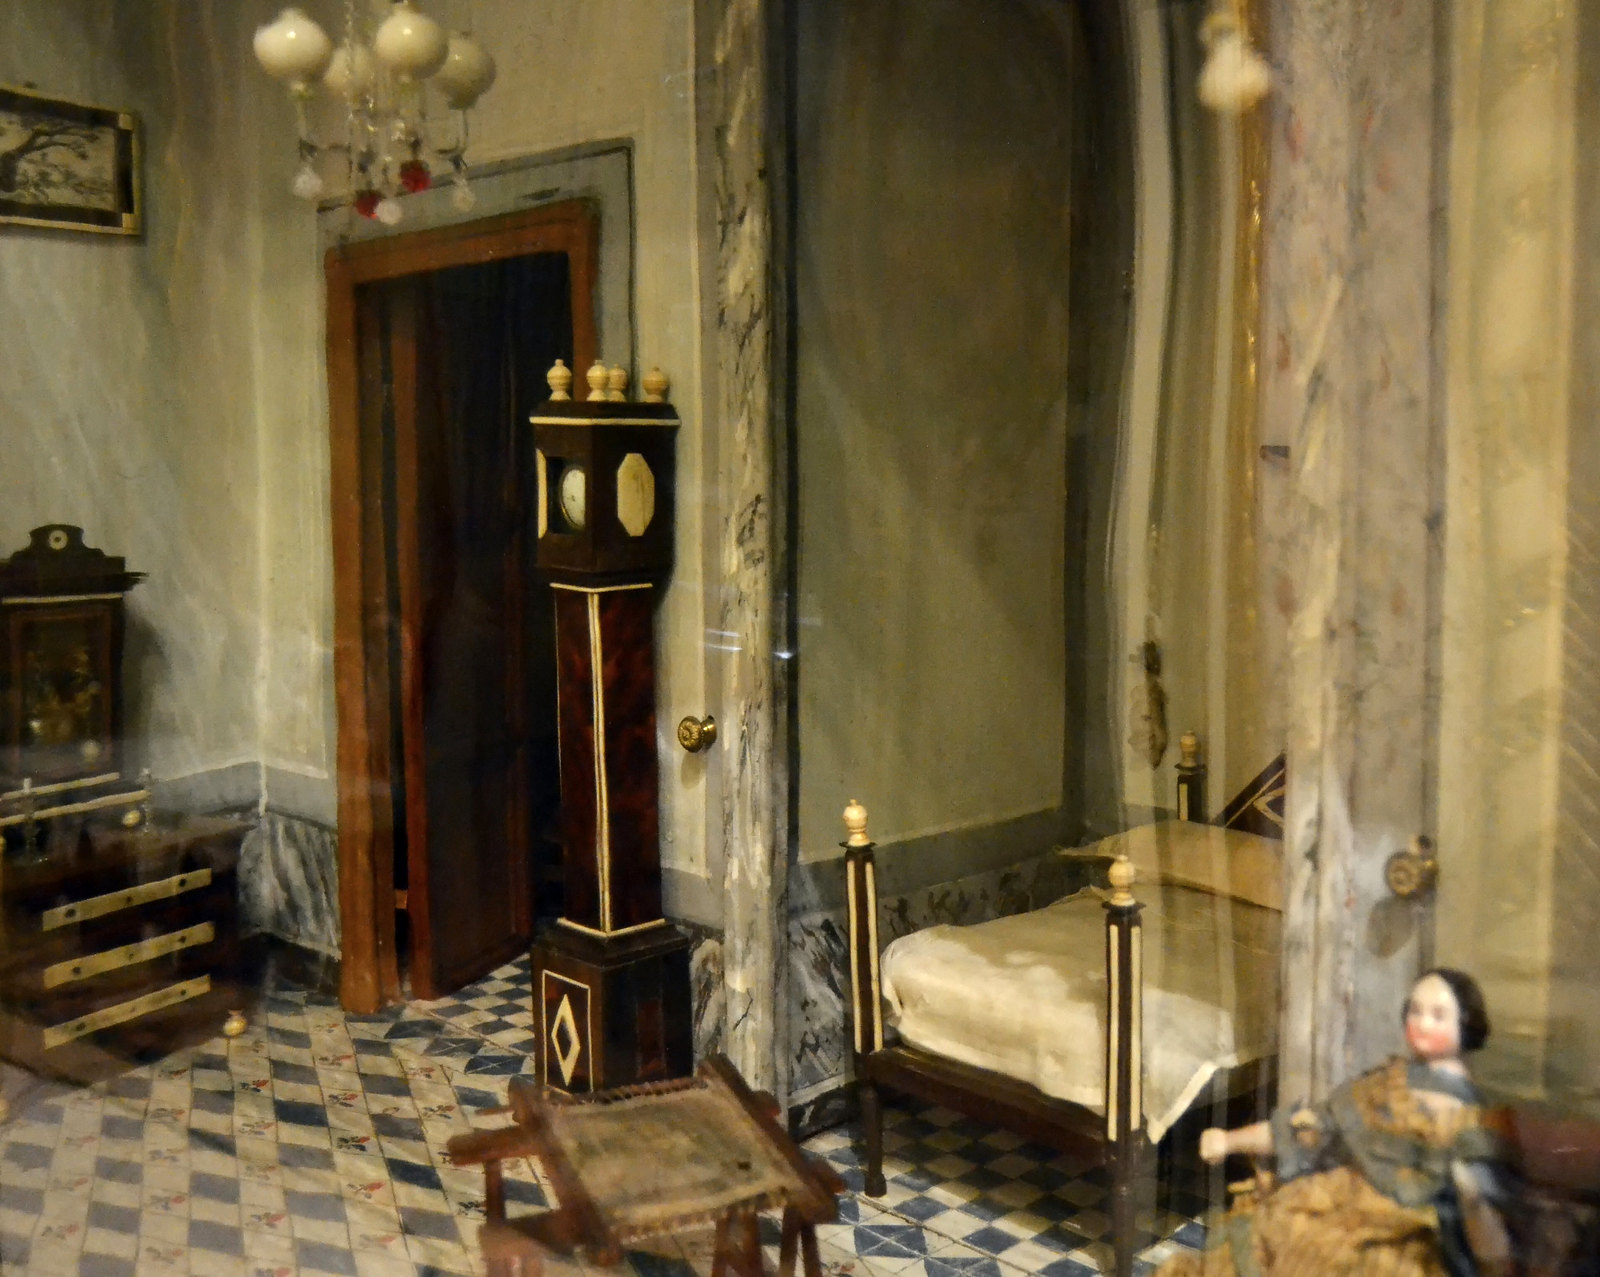 19th-century Dollhouse. Credit Joanbanjo